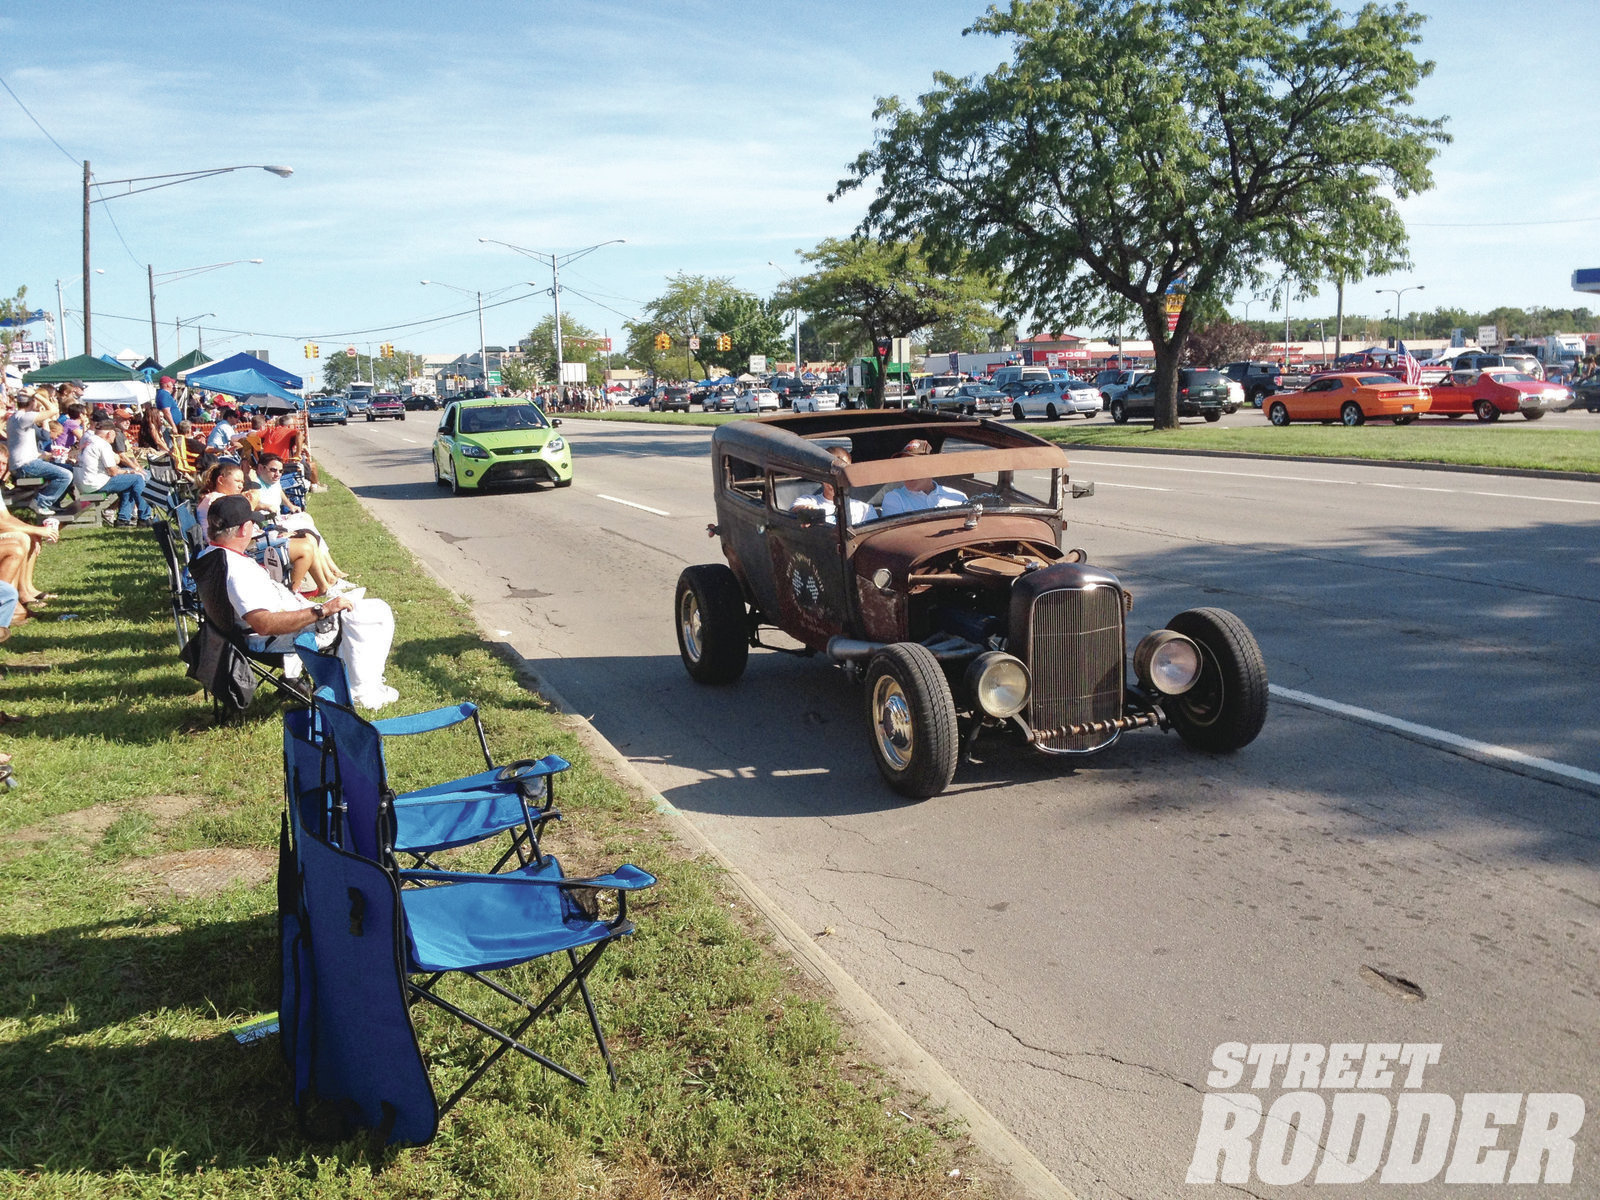 This was the scene the entire day on Saturday. The Dream Cruise brings out all types of special-interest vehicles that cruise Woodward Avenue to the delight of spectators lining 10 miles of the famous boulevard.